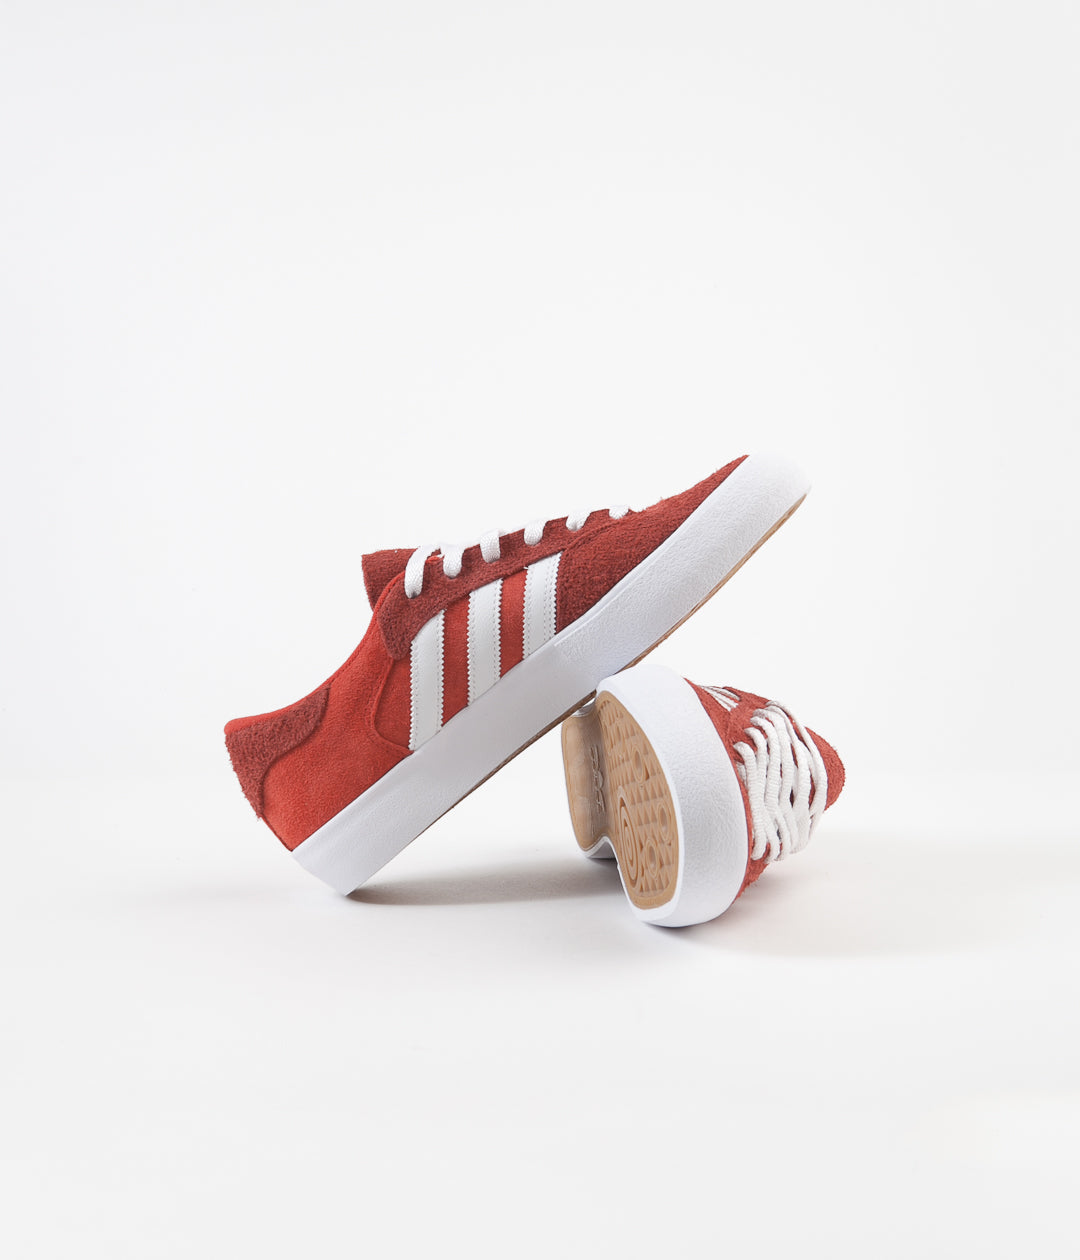 Adidas Matchbreak Super Shoes - Brick / White / Gold Metallic